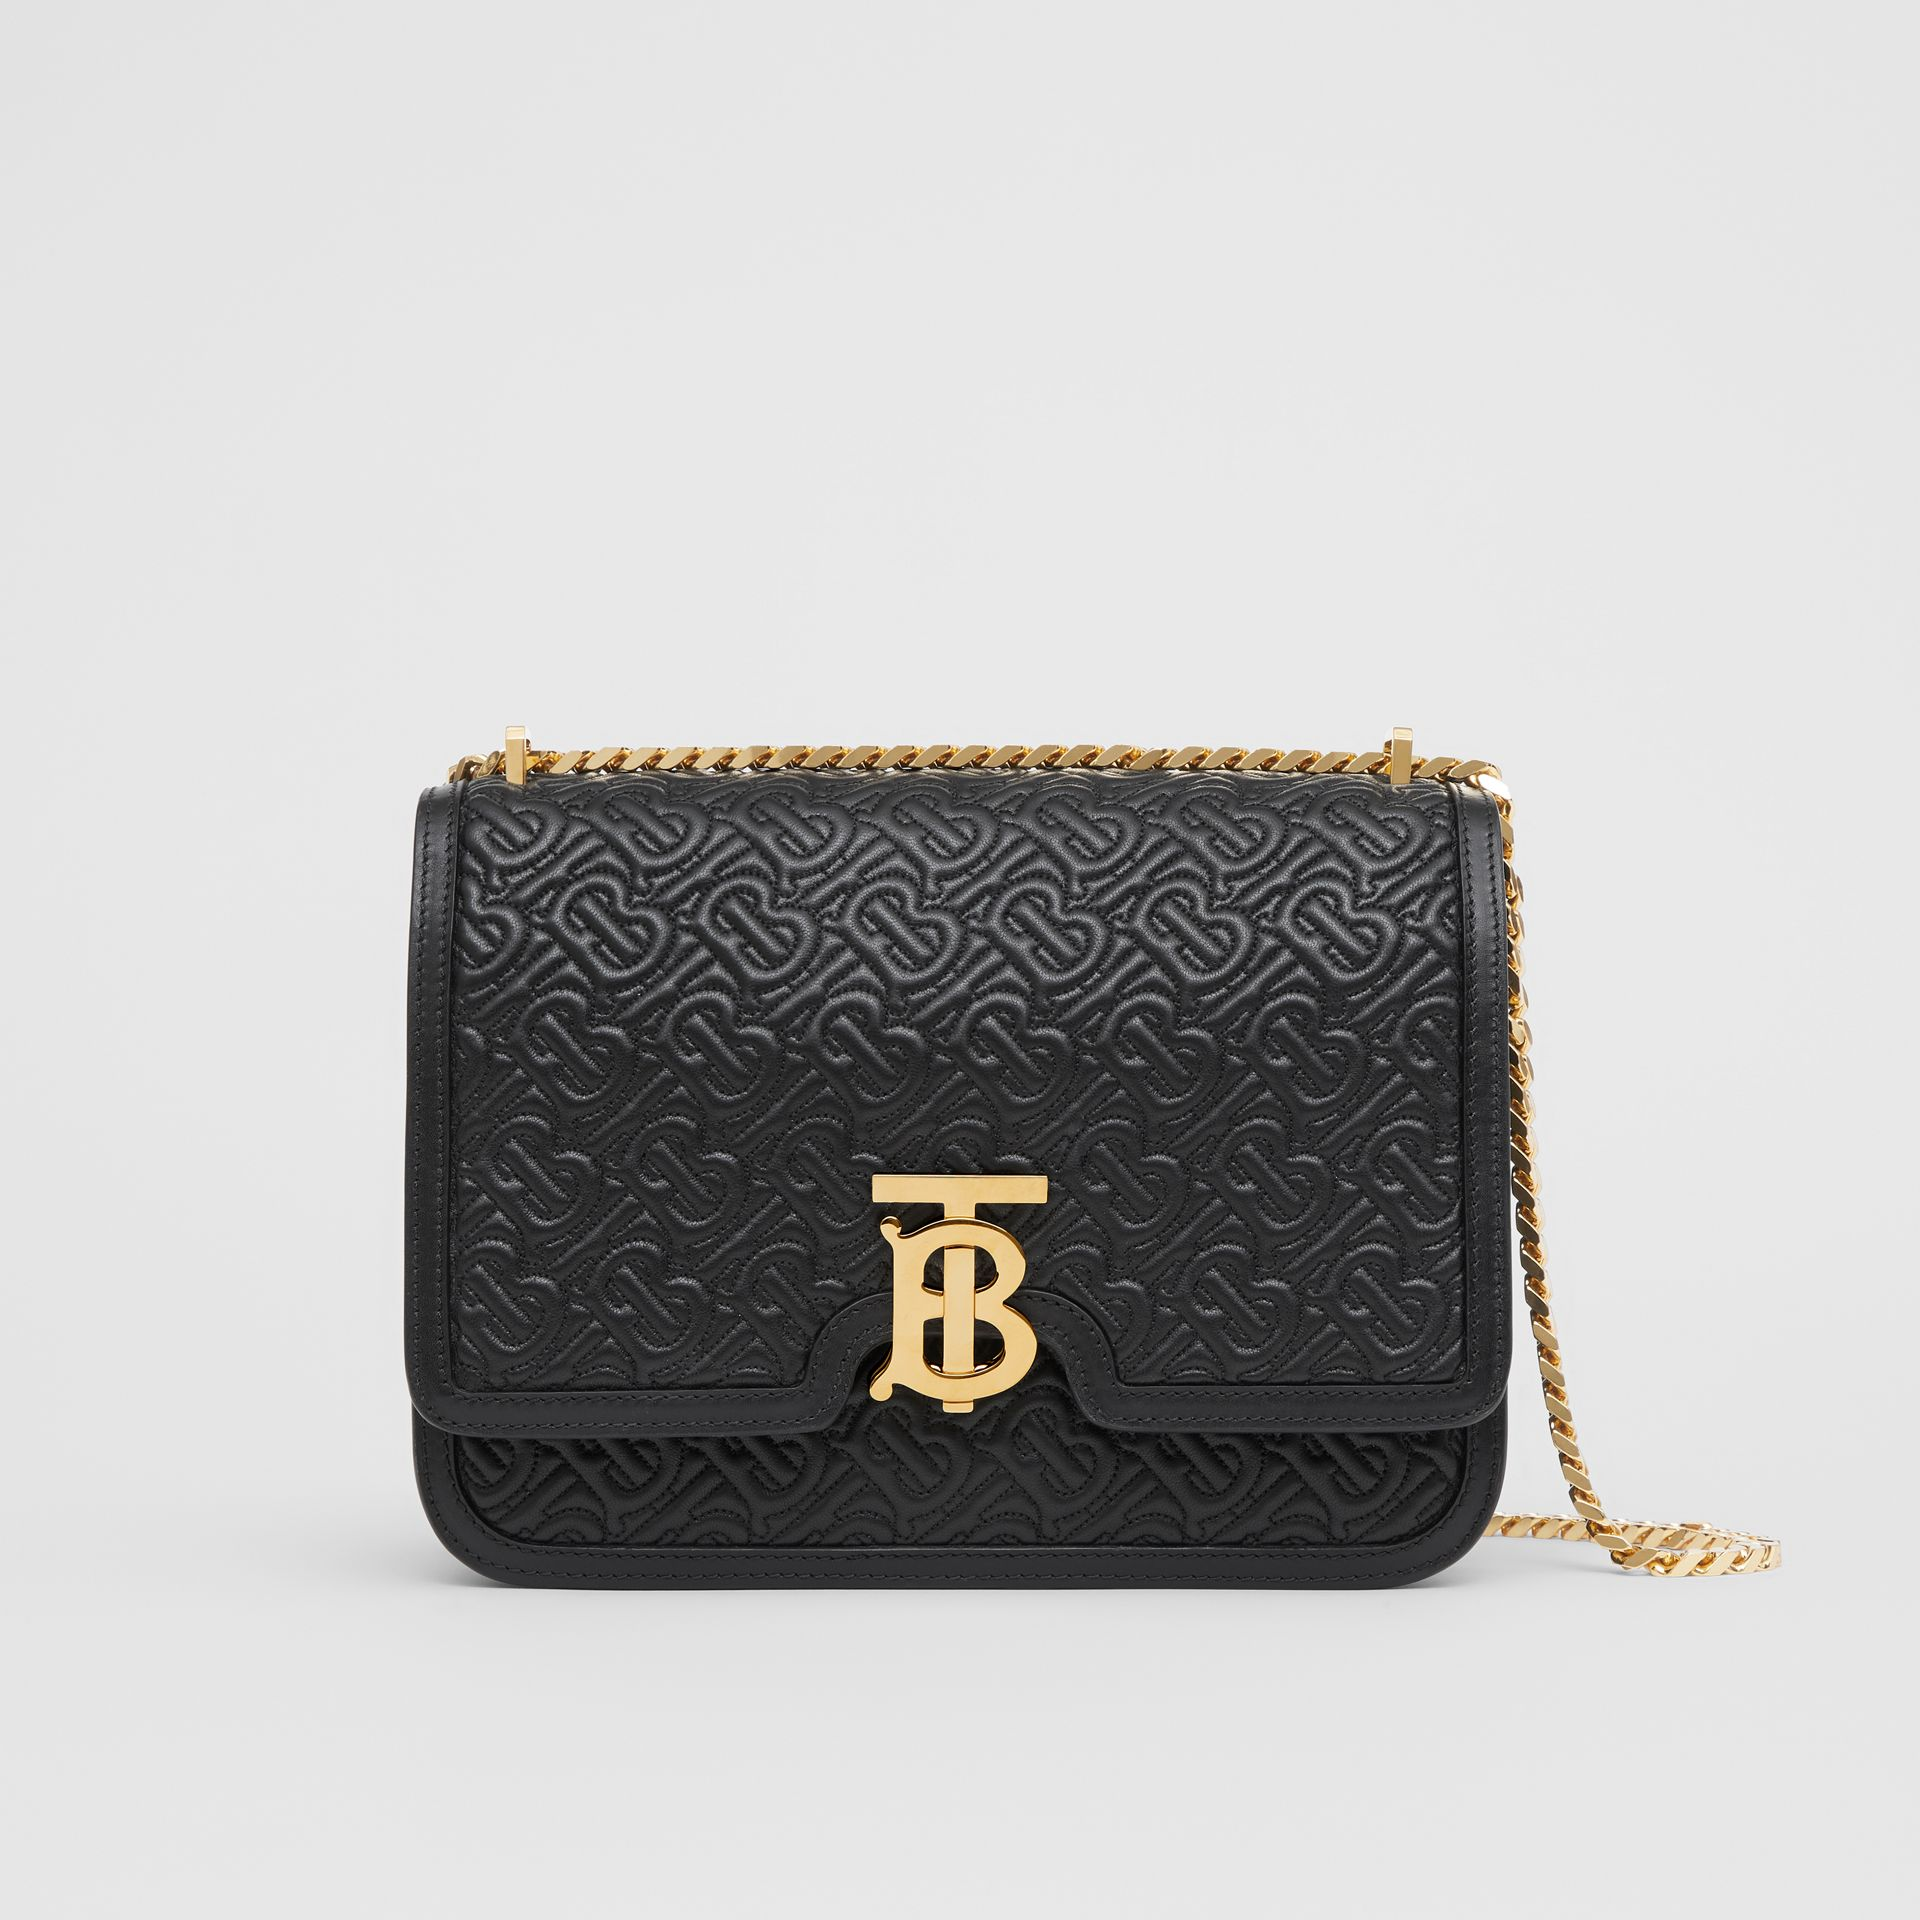 Medium Quilted Monogram Lambskin TB Bag in Black - Women | Burberry - gallery image 0